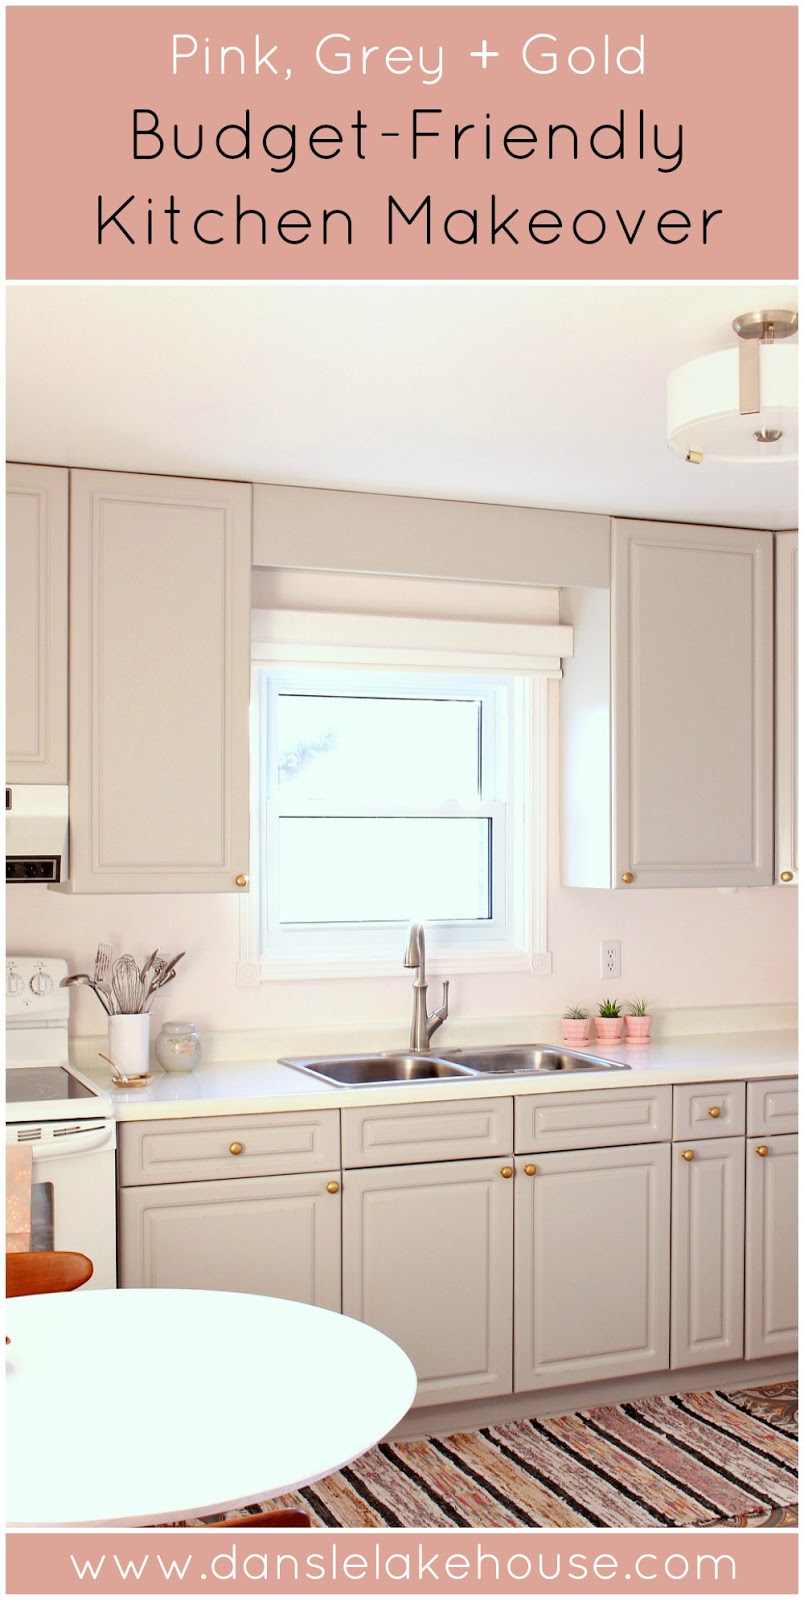 Budget-Friendly Grey, Pink, Gold Kitchen Makeover with Vintage Vibe